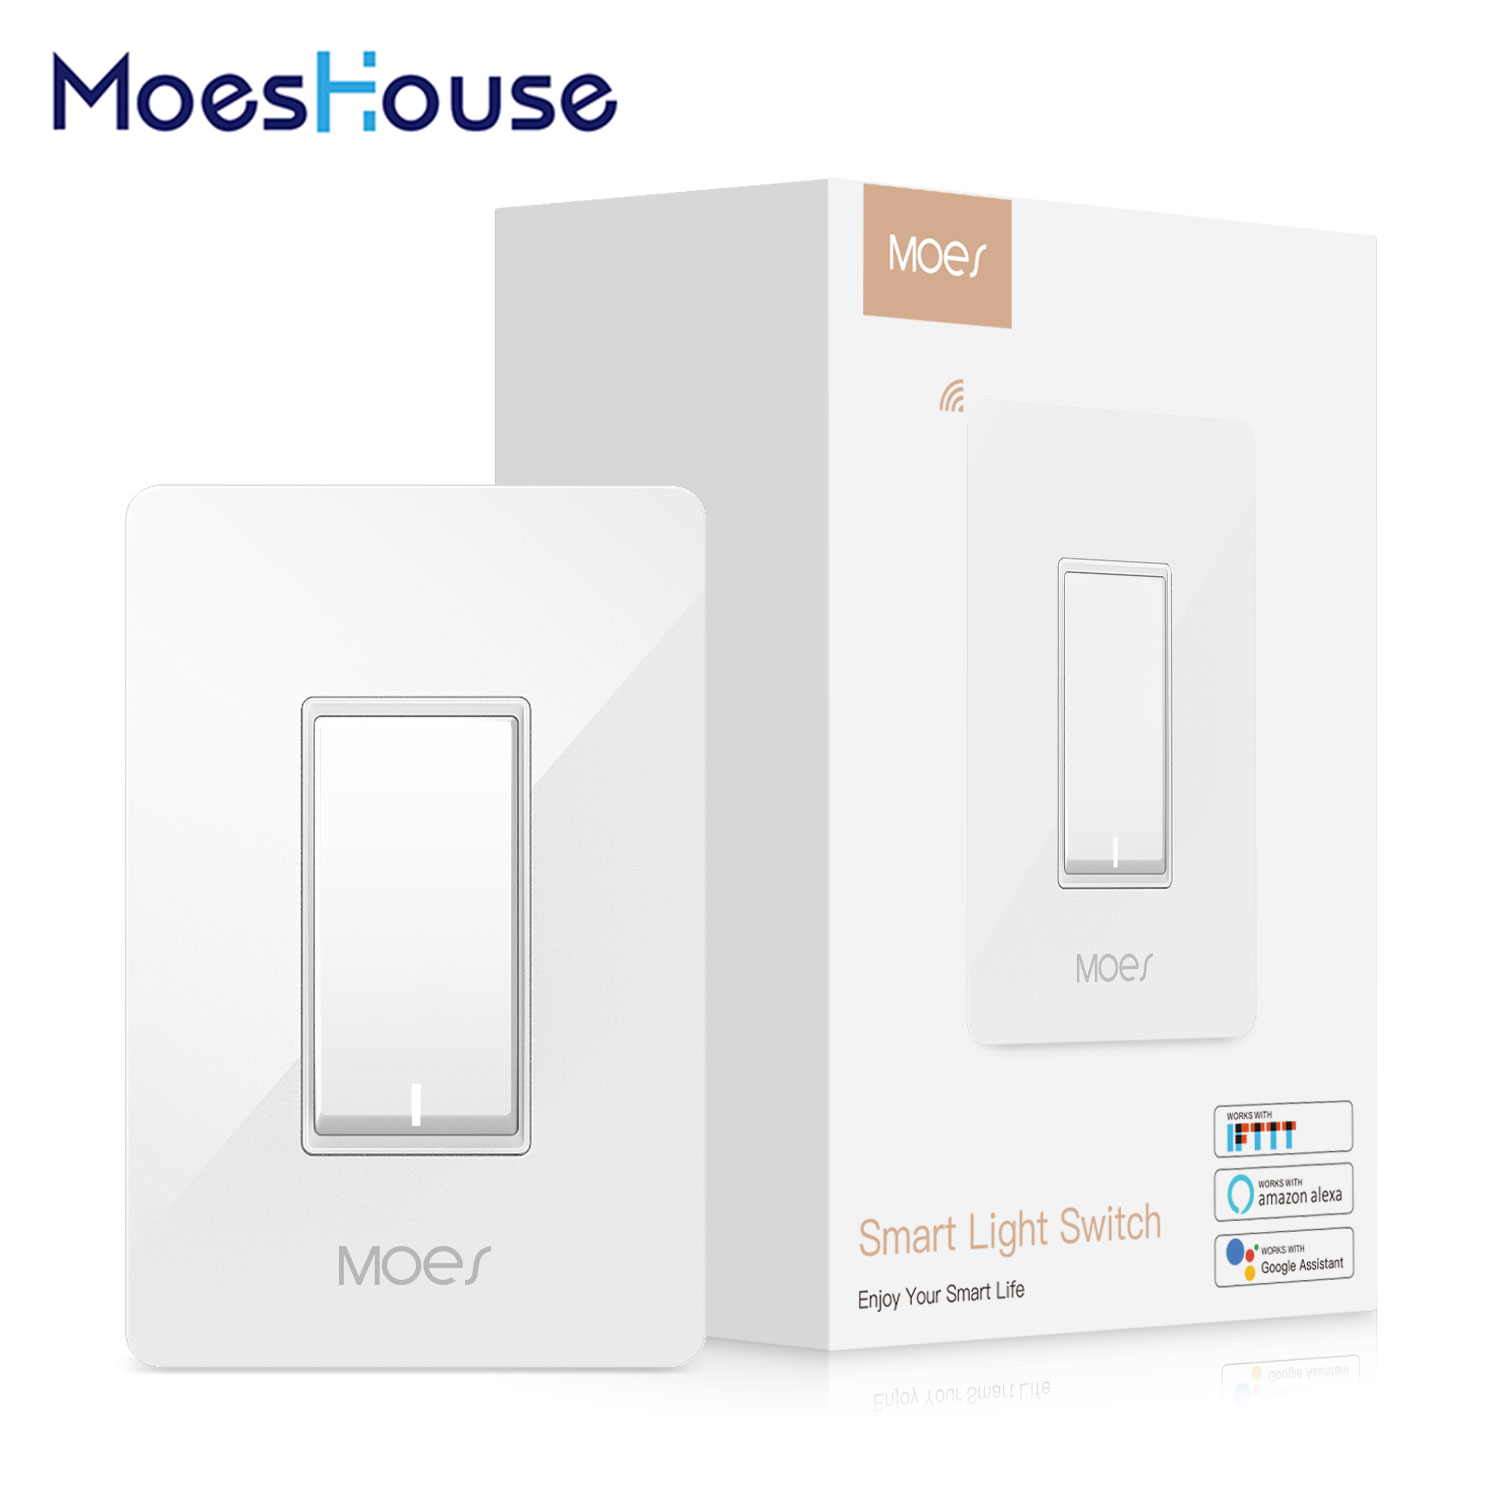 US WiFi Smart Light Switch Control By Smart Life/Tuya APP Works With Alexa Google Home For Voice Control No Hub Required